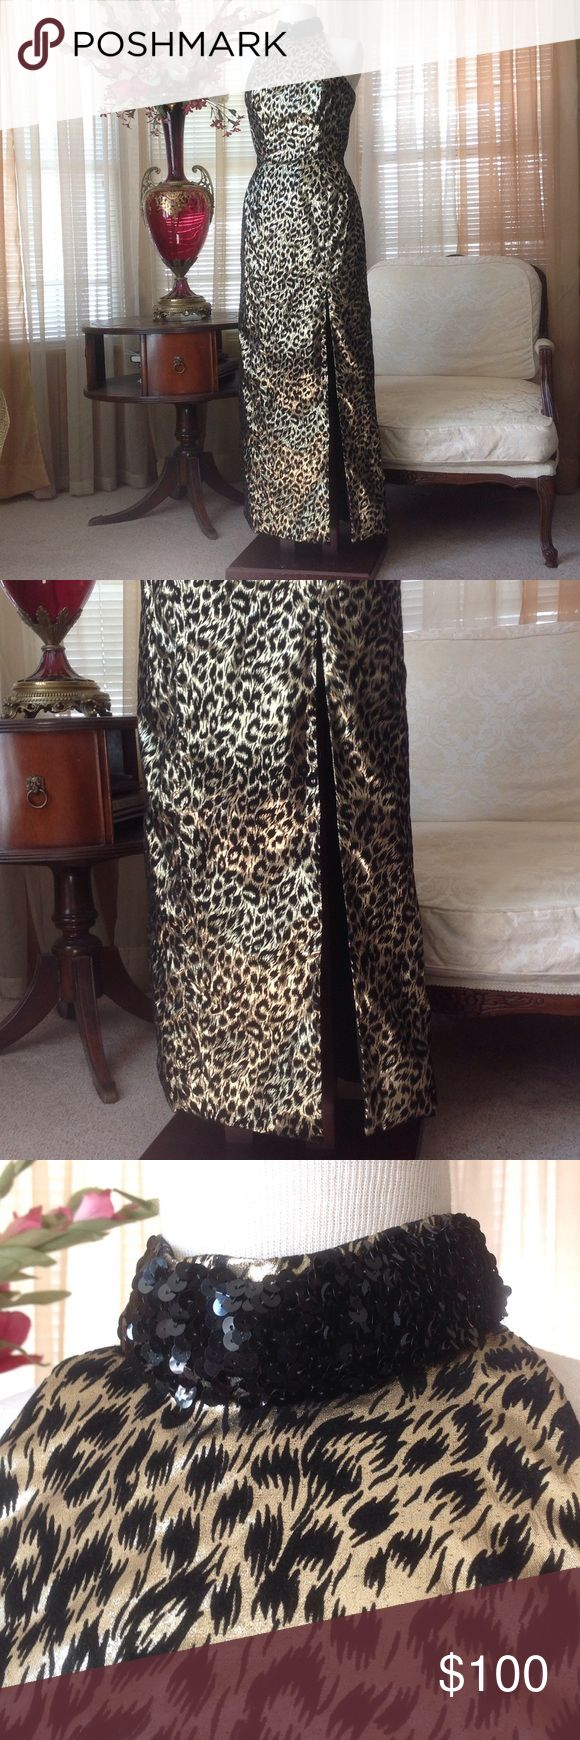 "Mike Benet formal gold and black long dress In excellent condition except for the 2 tiny holes in the lining. Please see photo.. Color is a combination of gold and black. It is 61"" long  measuring on the mannequin.  Black design is embossed velvet print.                                   a Mike Benet Dresses Maxi"